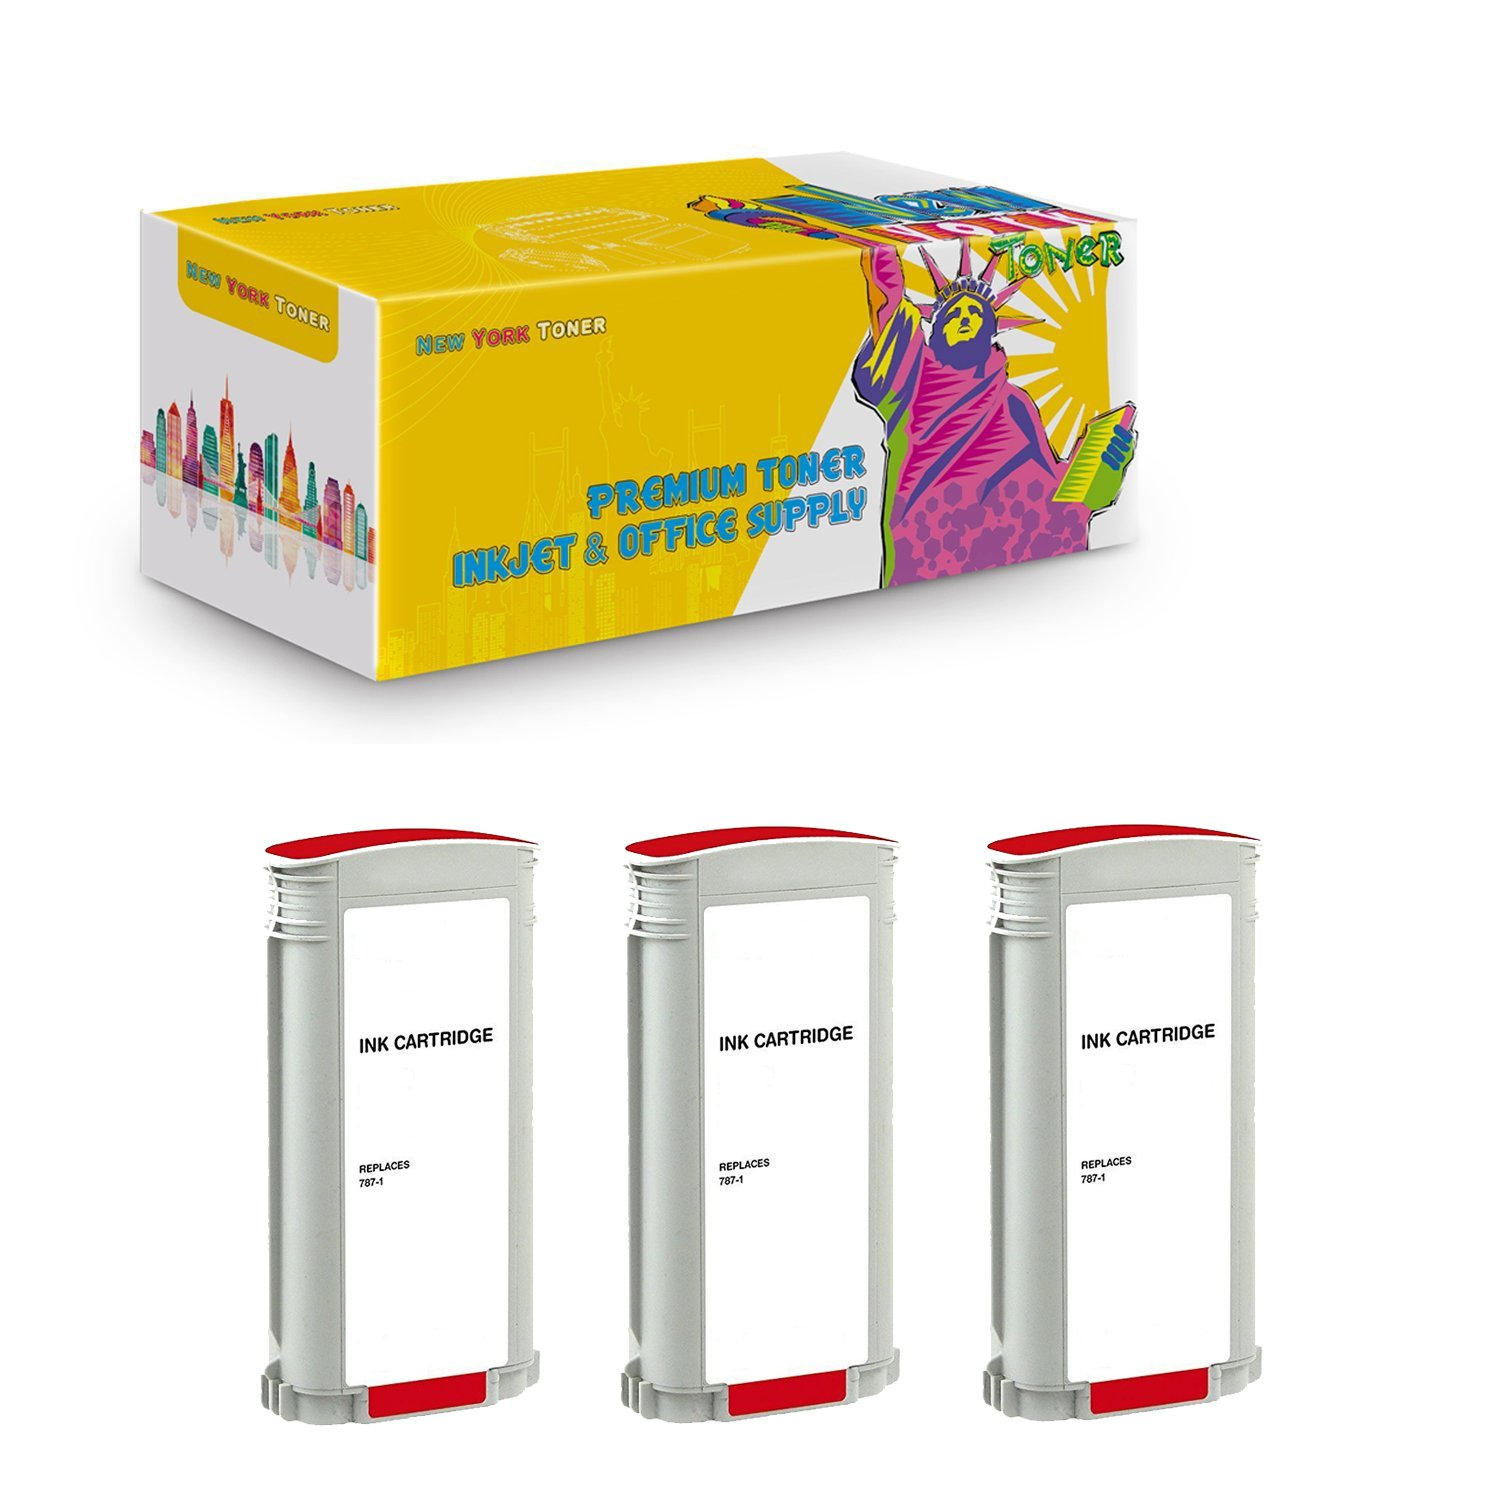 New York TonerTM New Compatible 3 Pack 787-1 High Yield Inkjet For Pitney Bowes - Connect+ 1000, 2000, 3000. -- Red